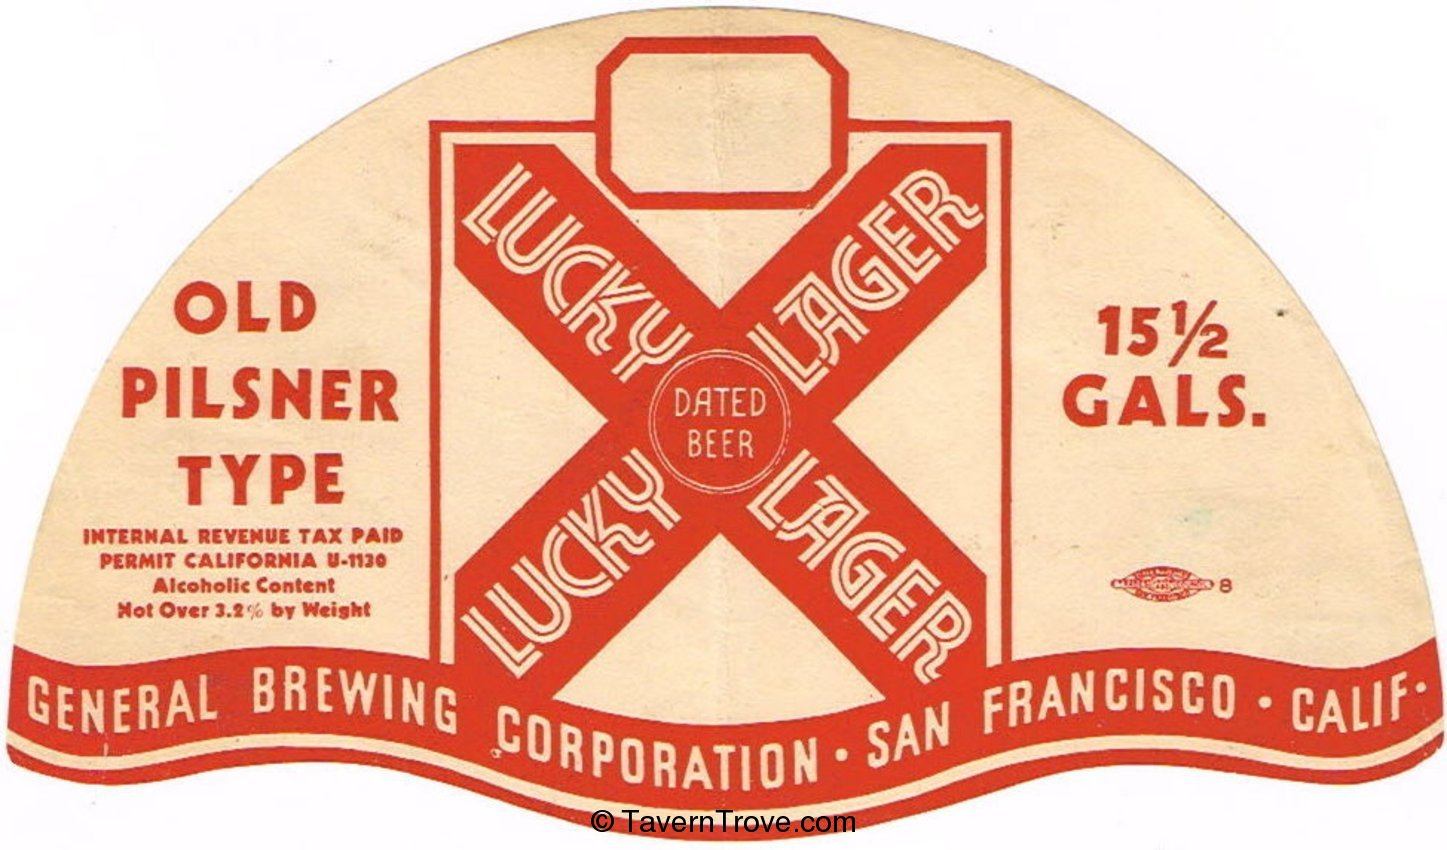 Lucky Lager Old Pilsner Type Beer